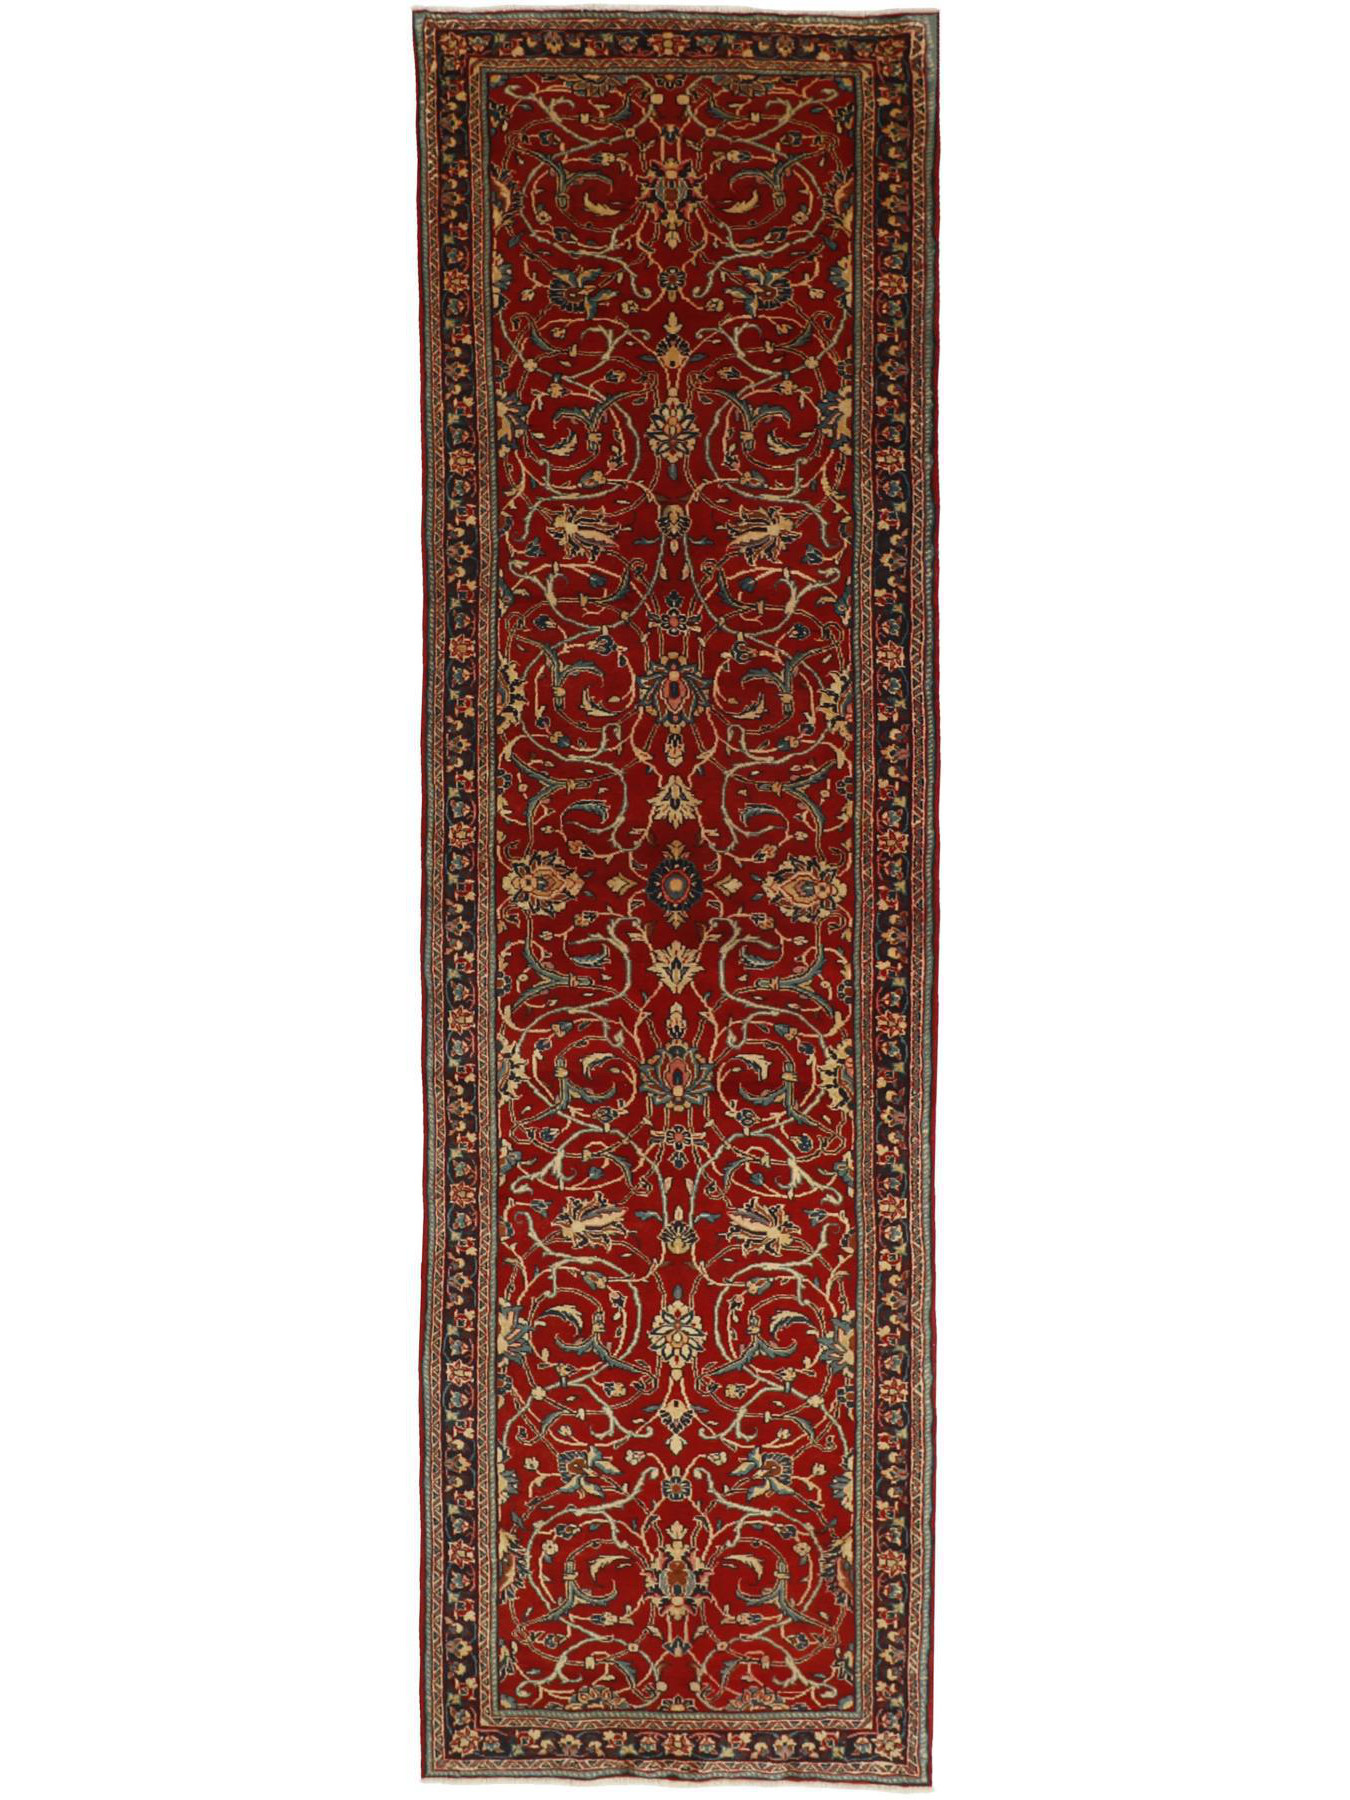 Tapis persans - Sarough